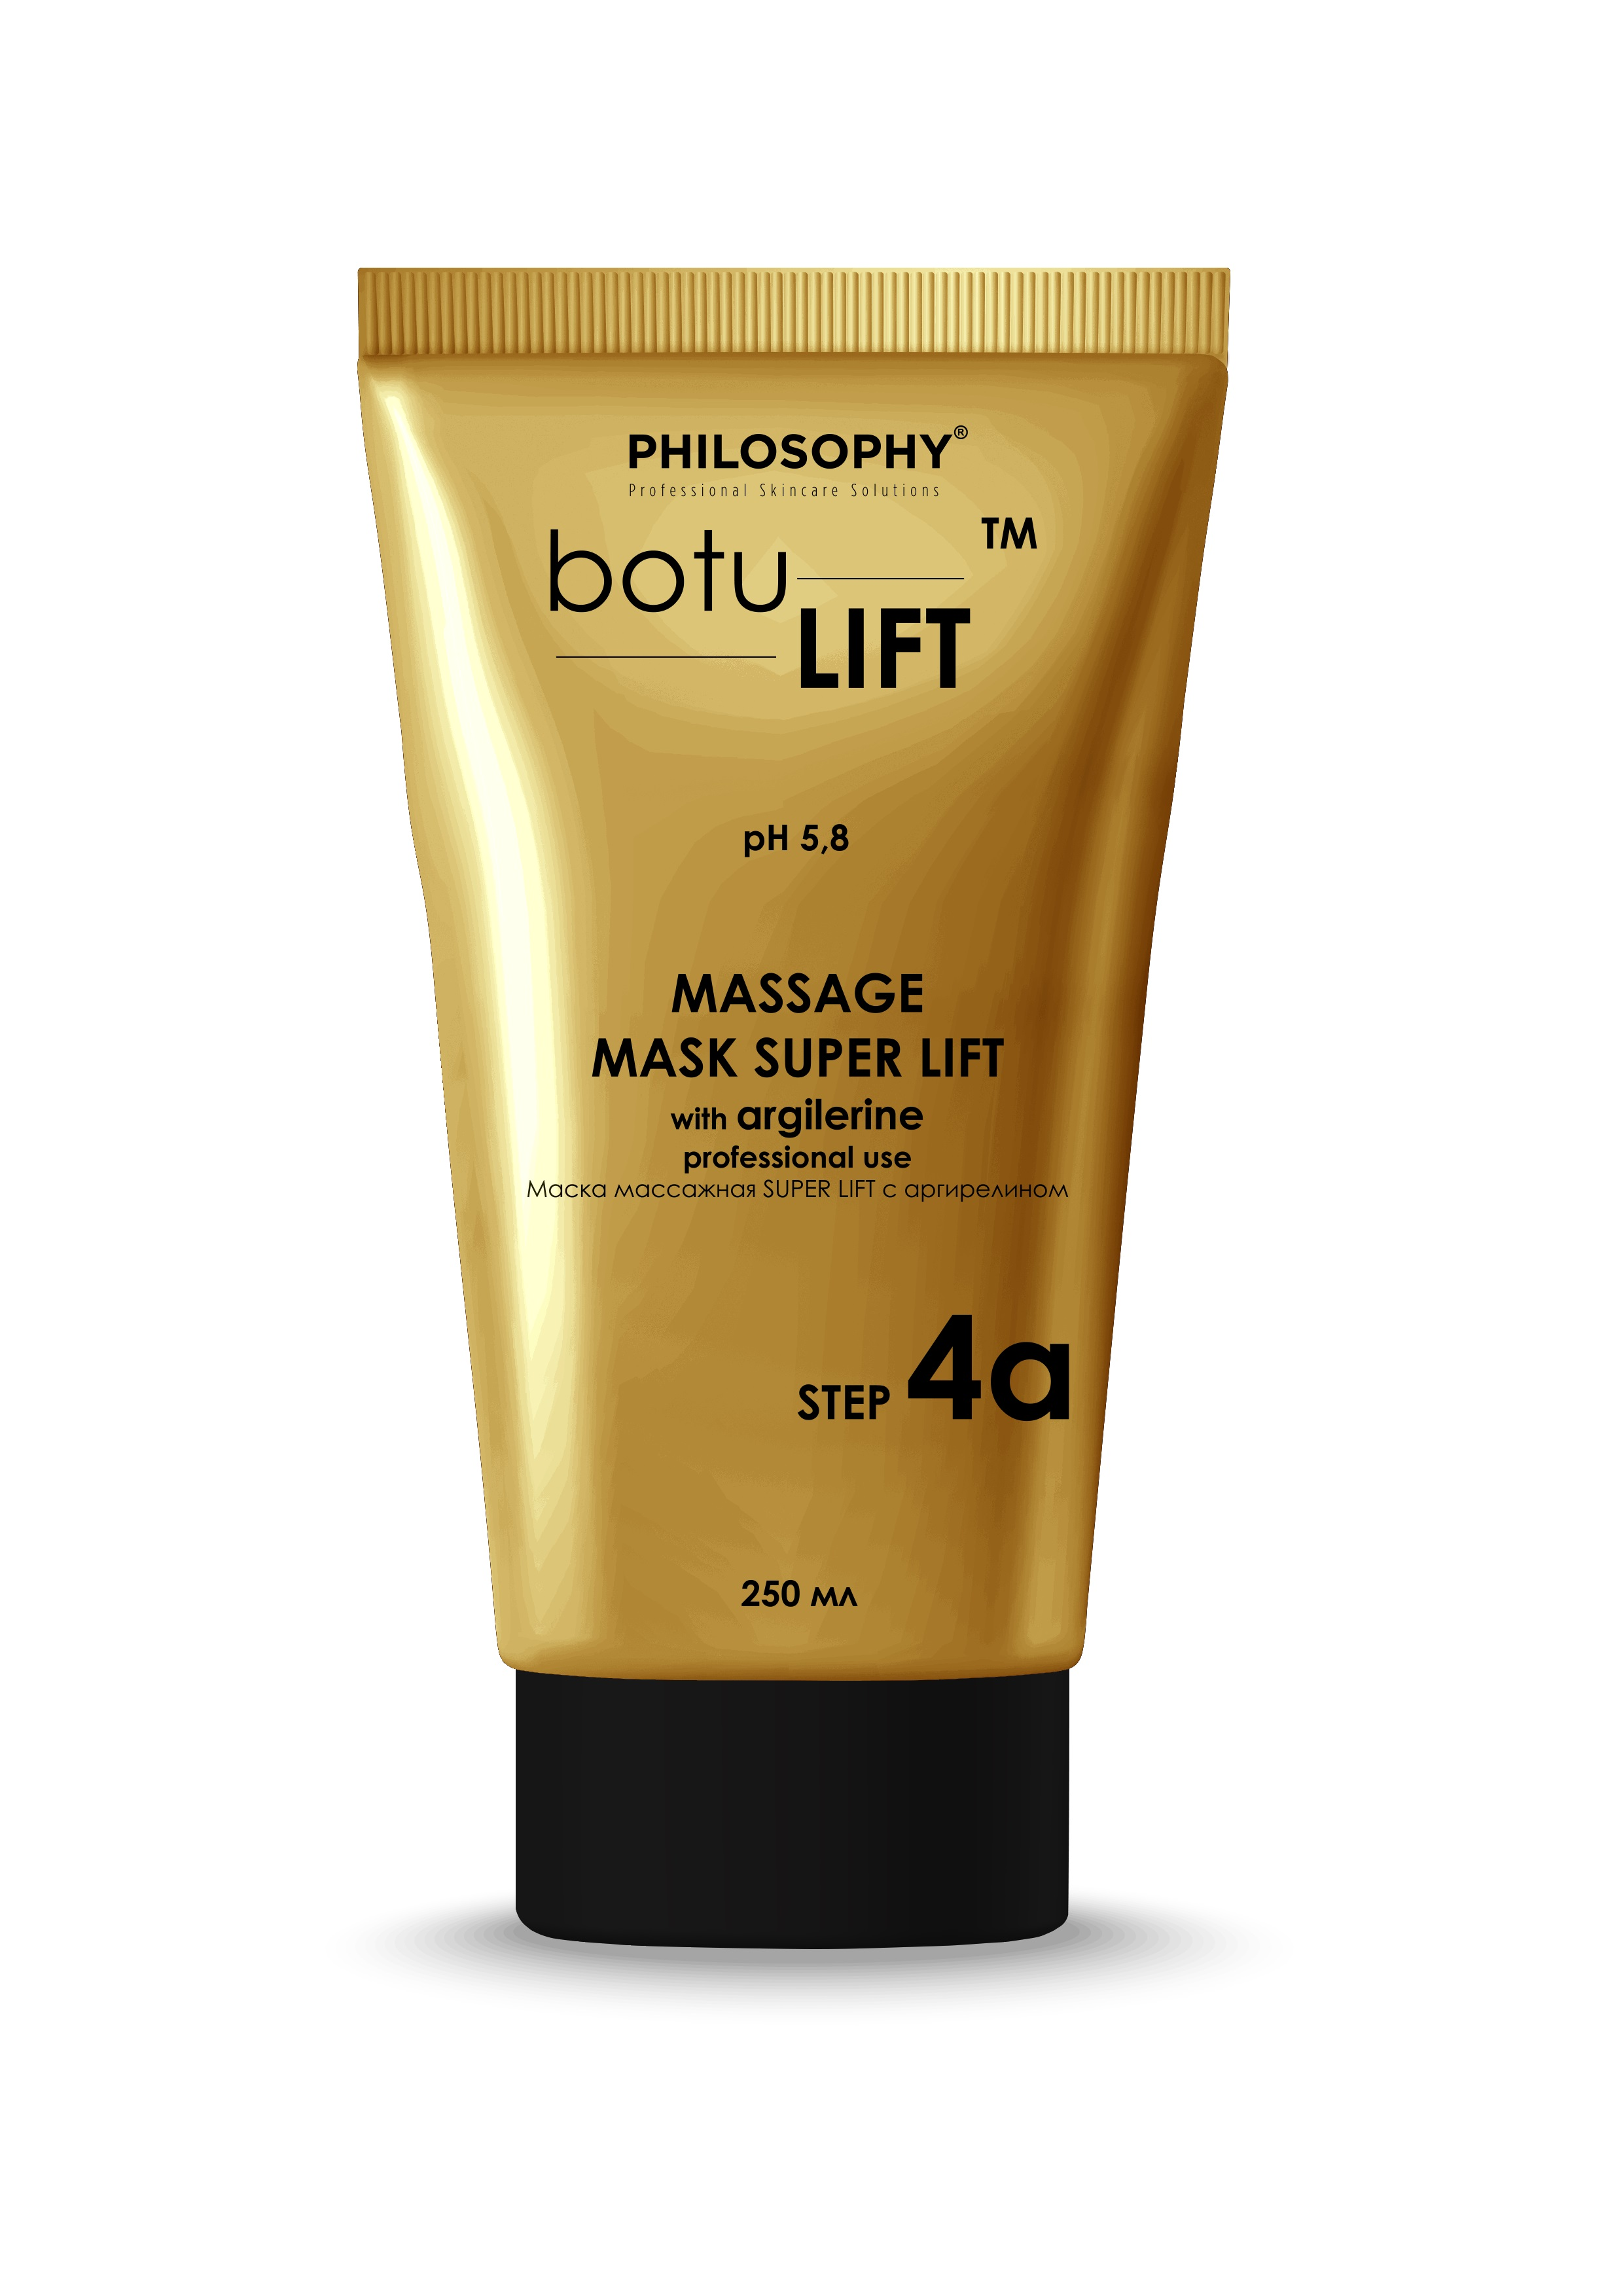 Массажная маска Philosophy Botulift Massage Mask Super Lift With Argilerine For Professional Use